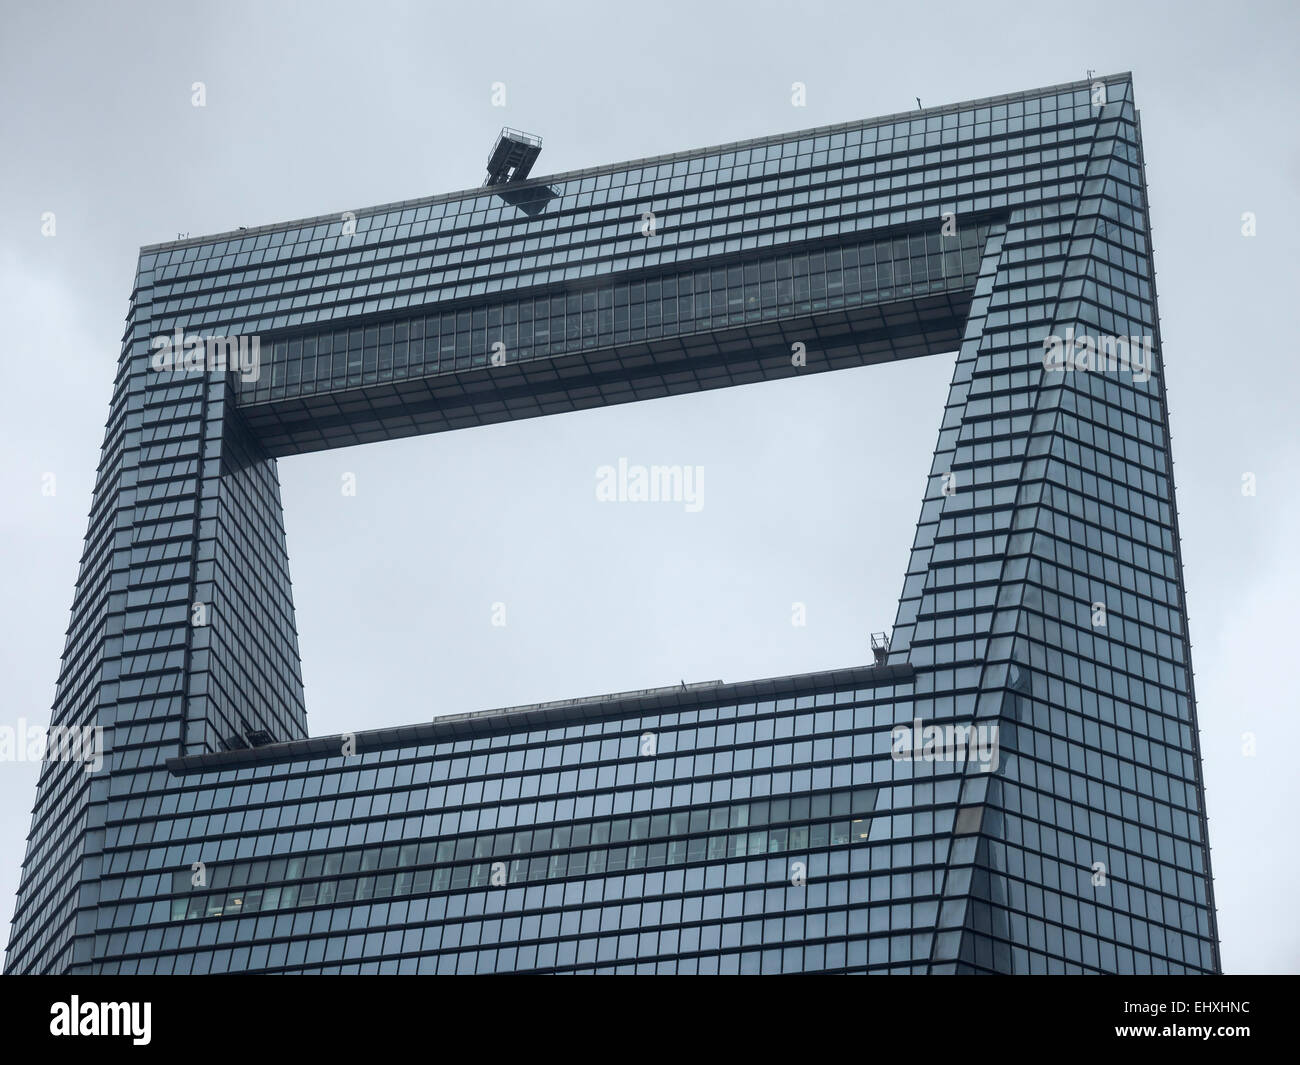 Detail Of The Top Of The Shanghai World Financial Center Skyscraper